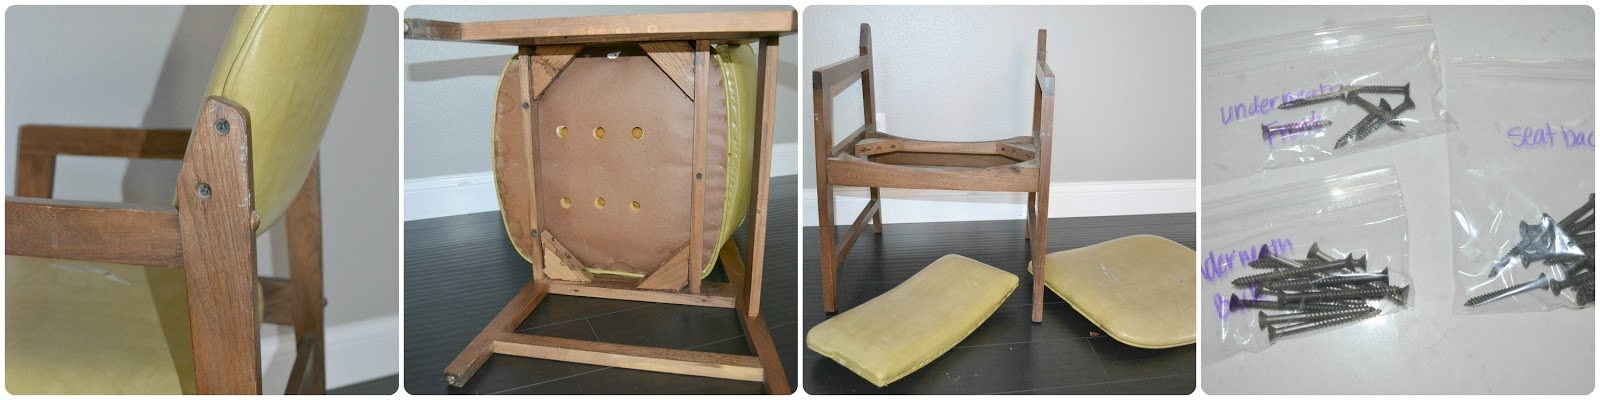 Reupholster Dining Chairs Chair Folds Into Bed How To Restoring The Wood Frames Garage Sale Furniture Makeover